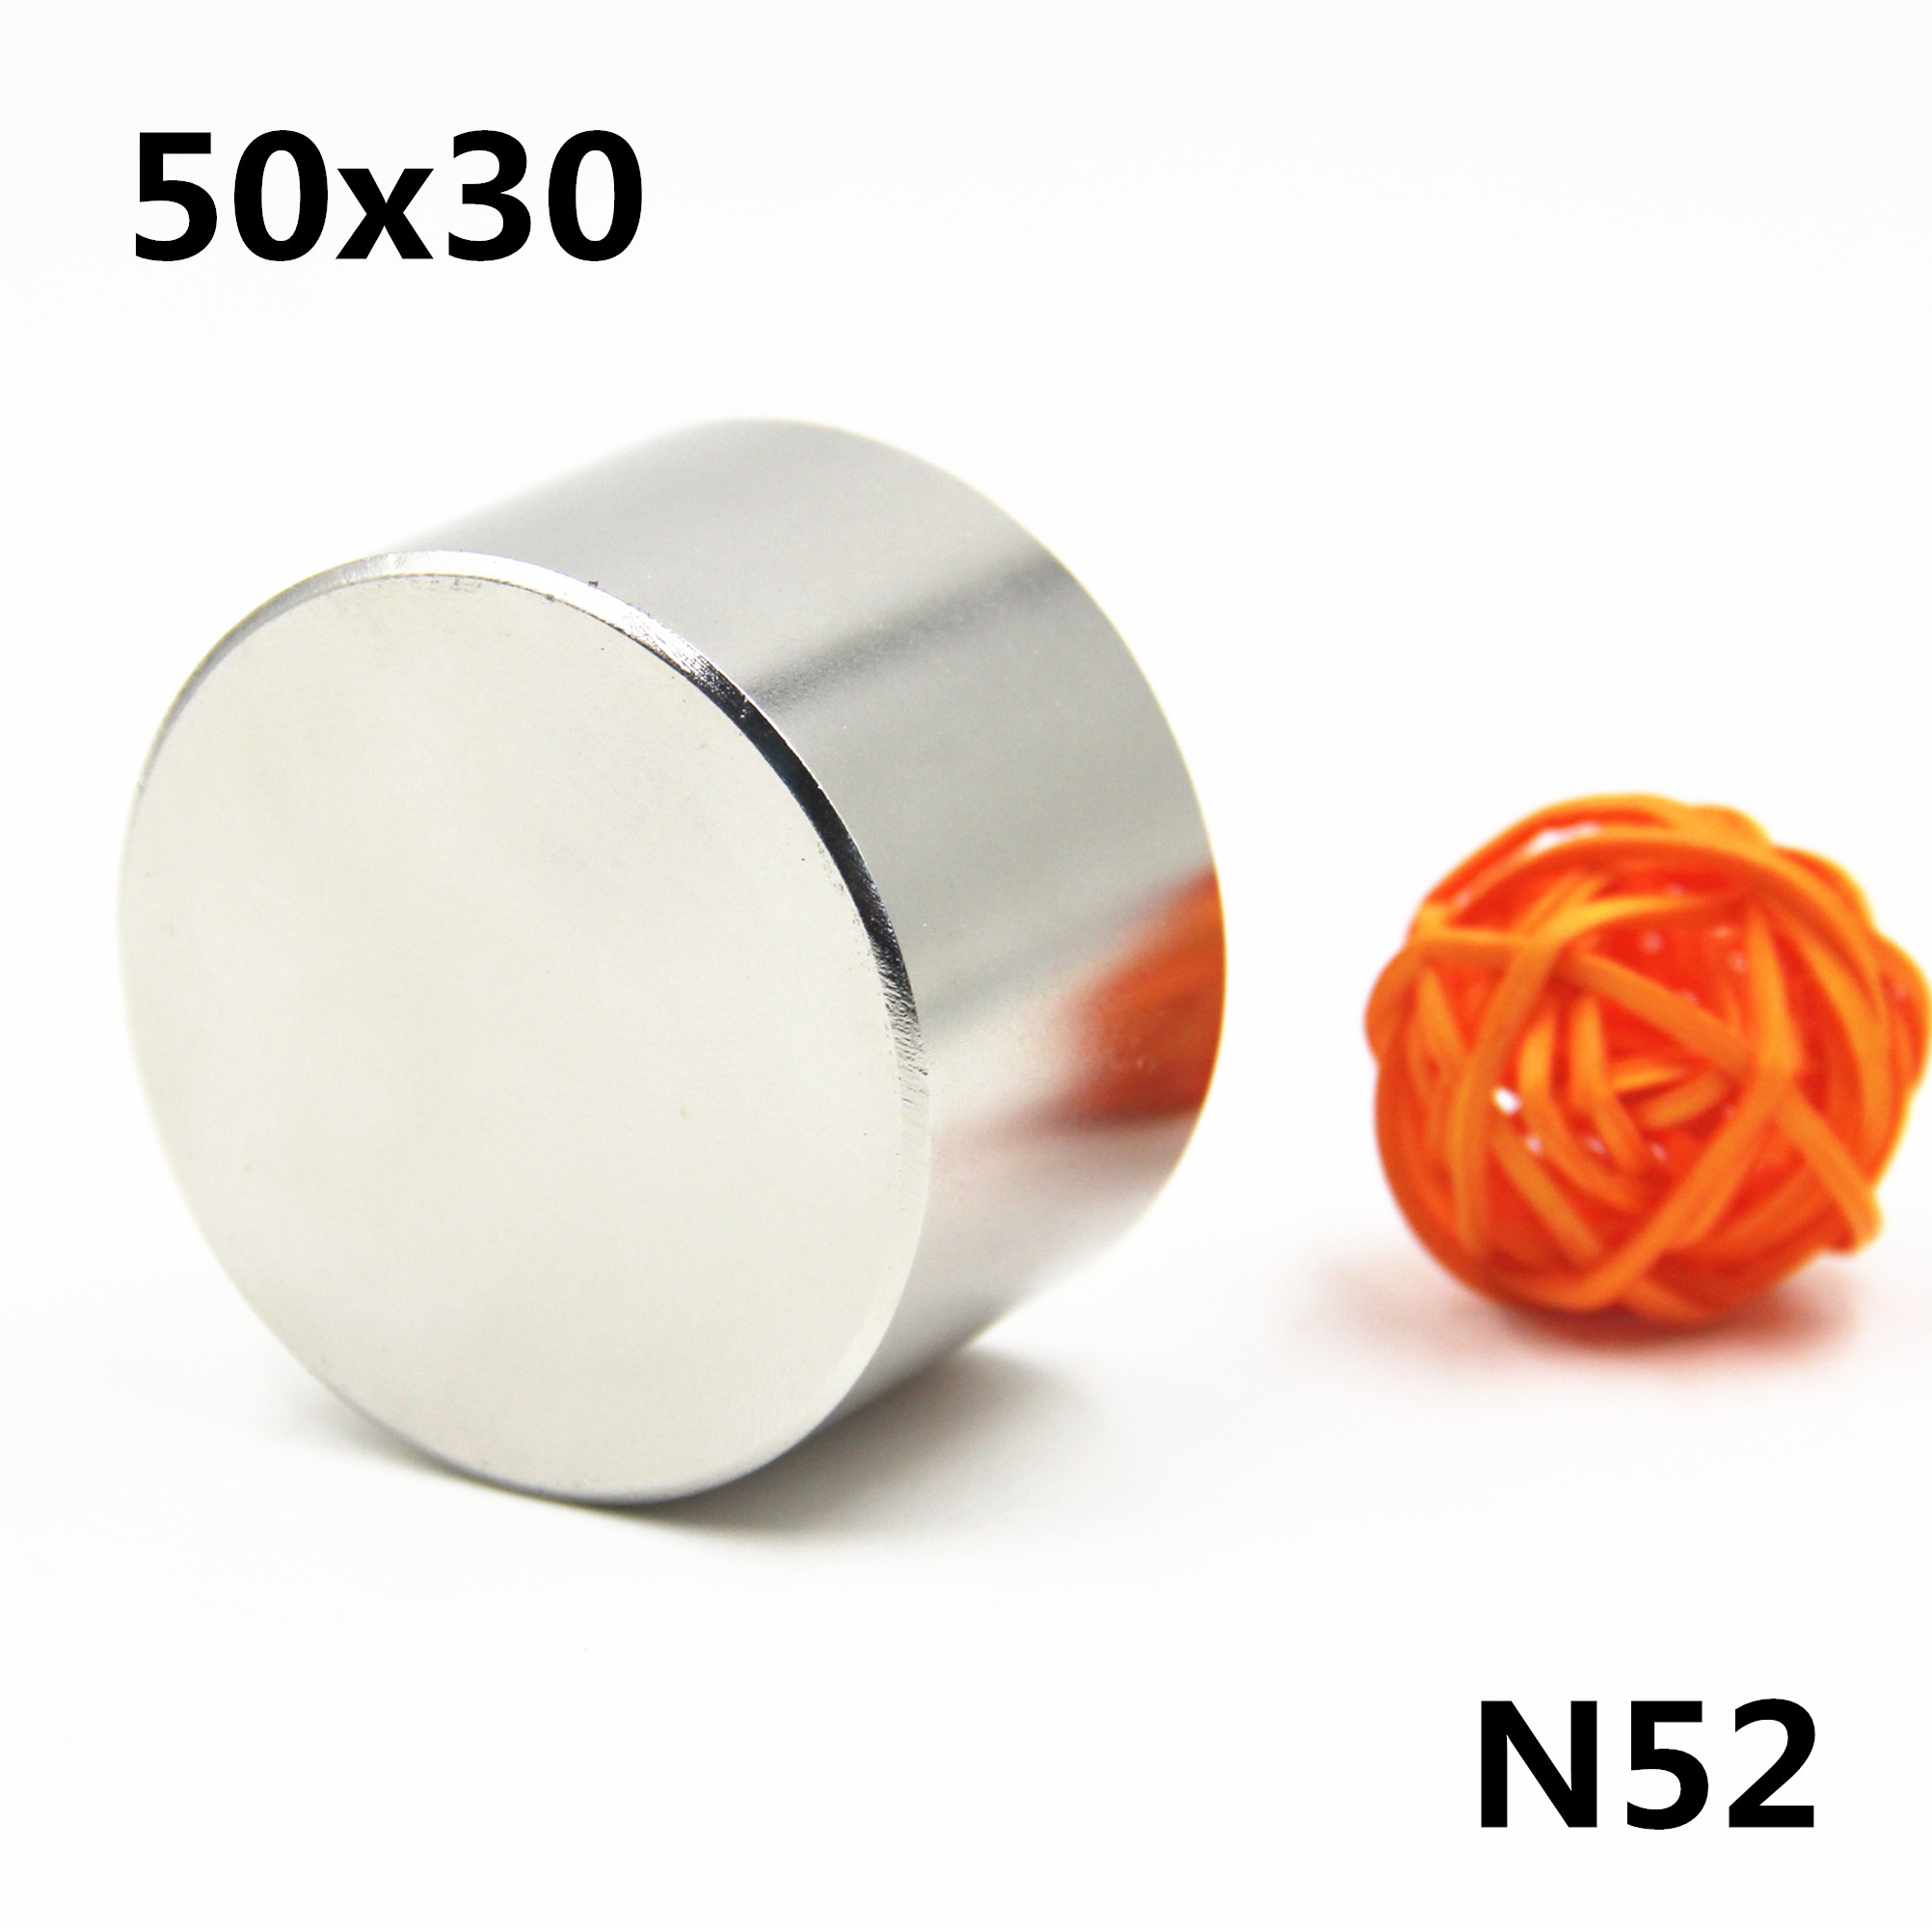 1pcs/lot N52 Dia 50x30 mm hot round magnet Strong magnets Rare Earth Neodymium Magnet 50x30mm wholesale <font><b>50*30</b></font> mm image